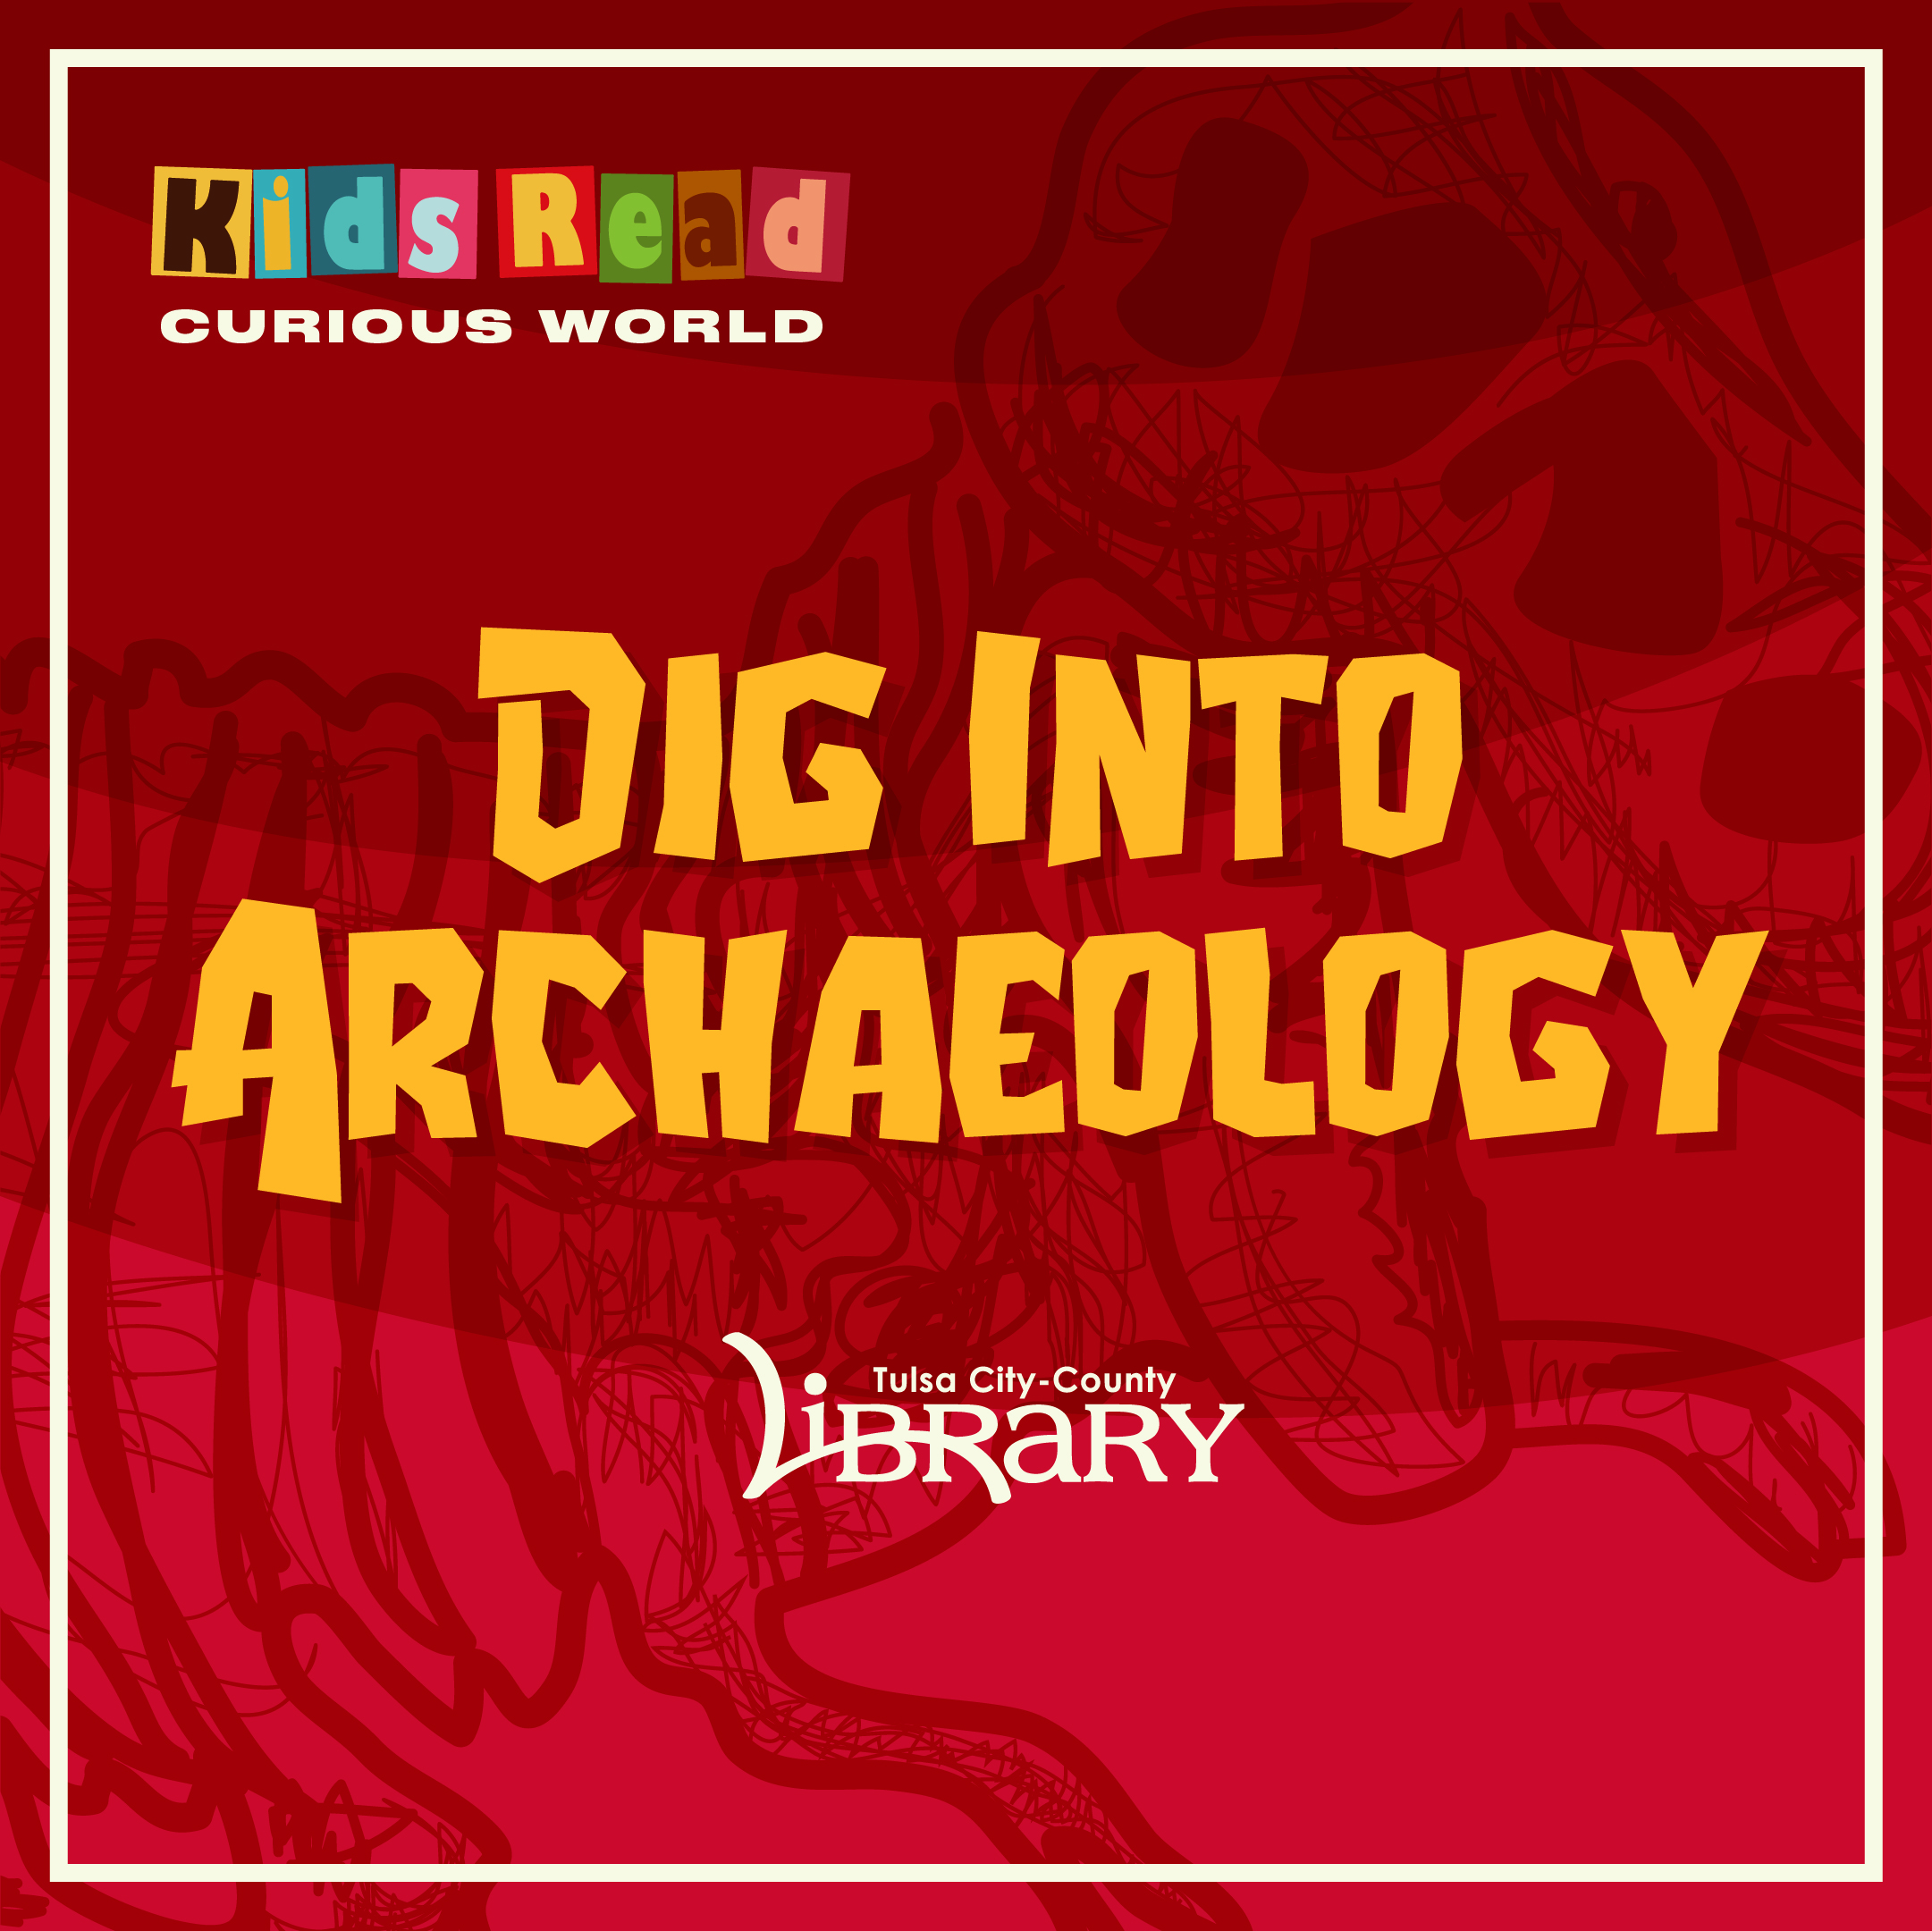 Kids Read Archaeology